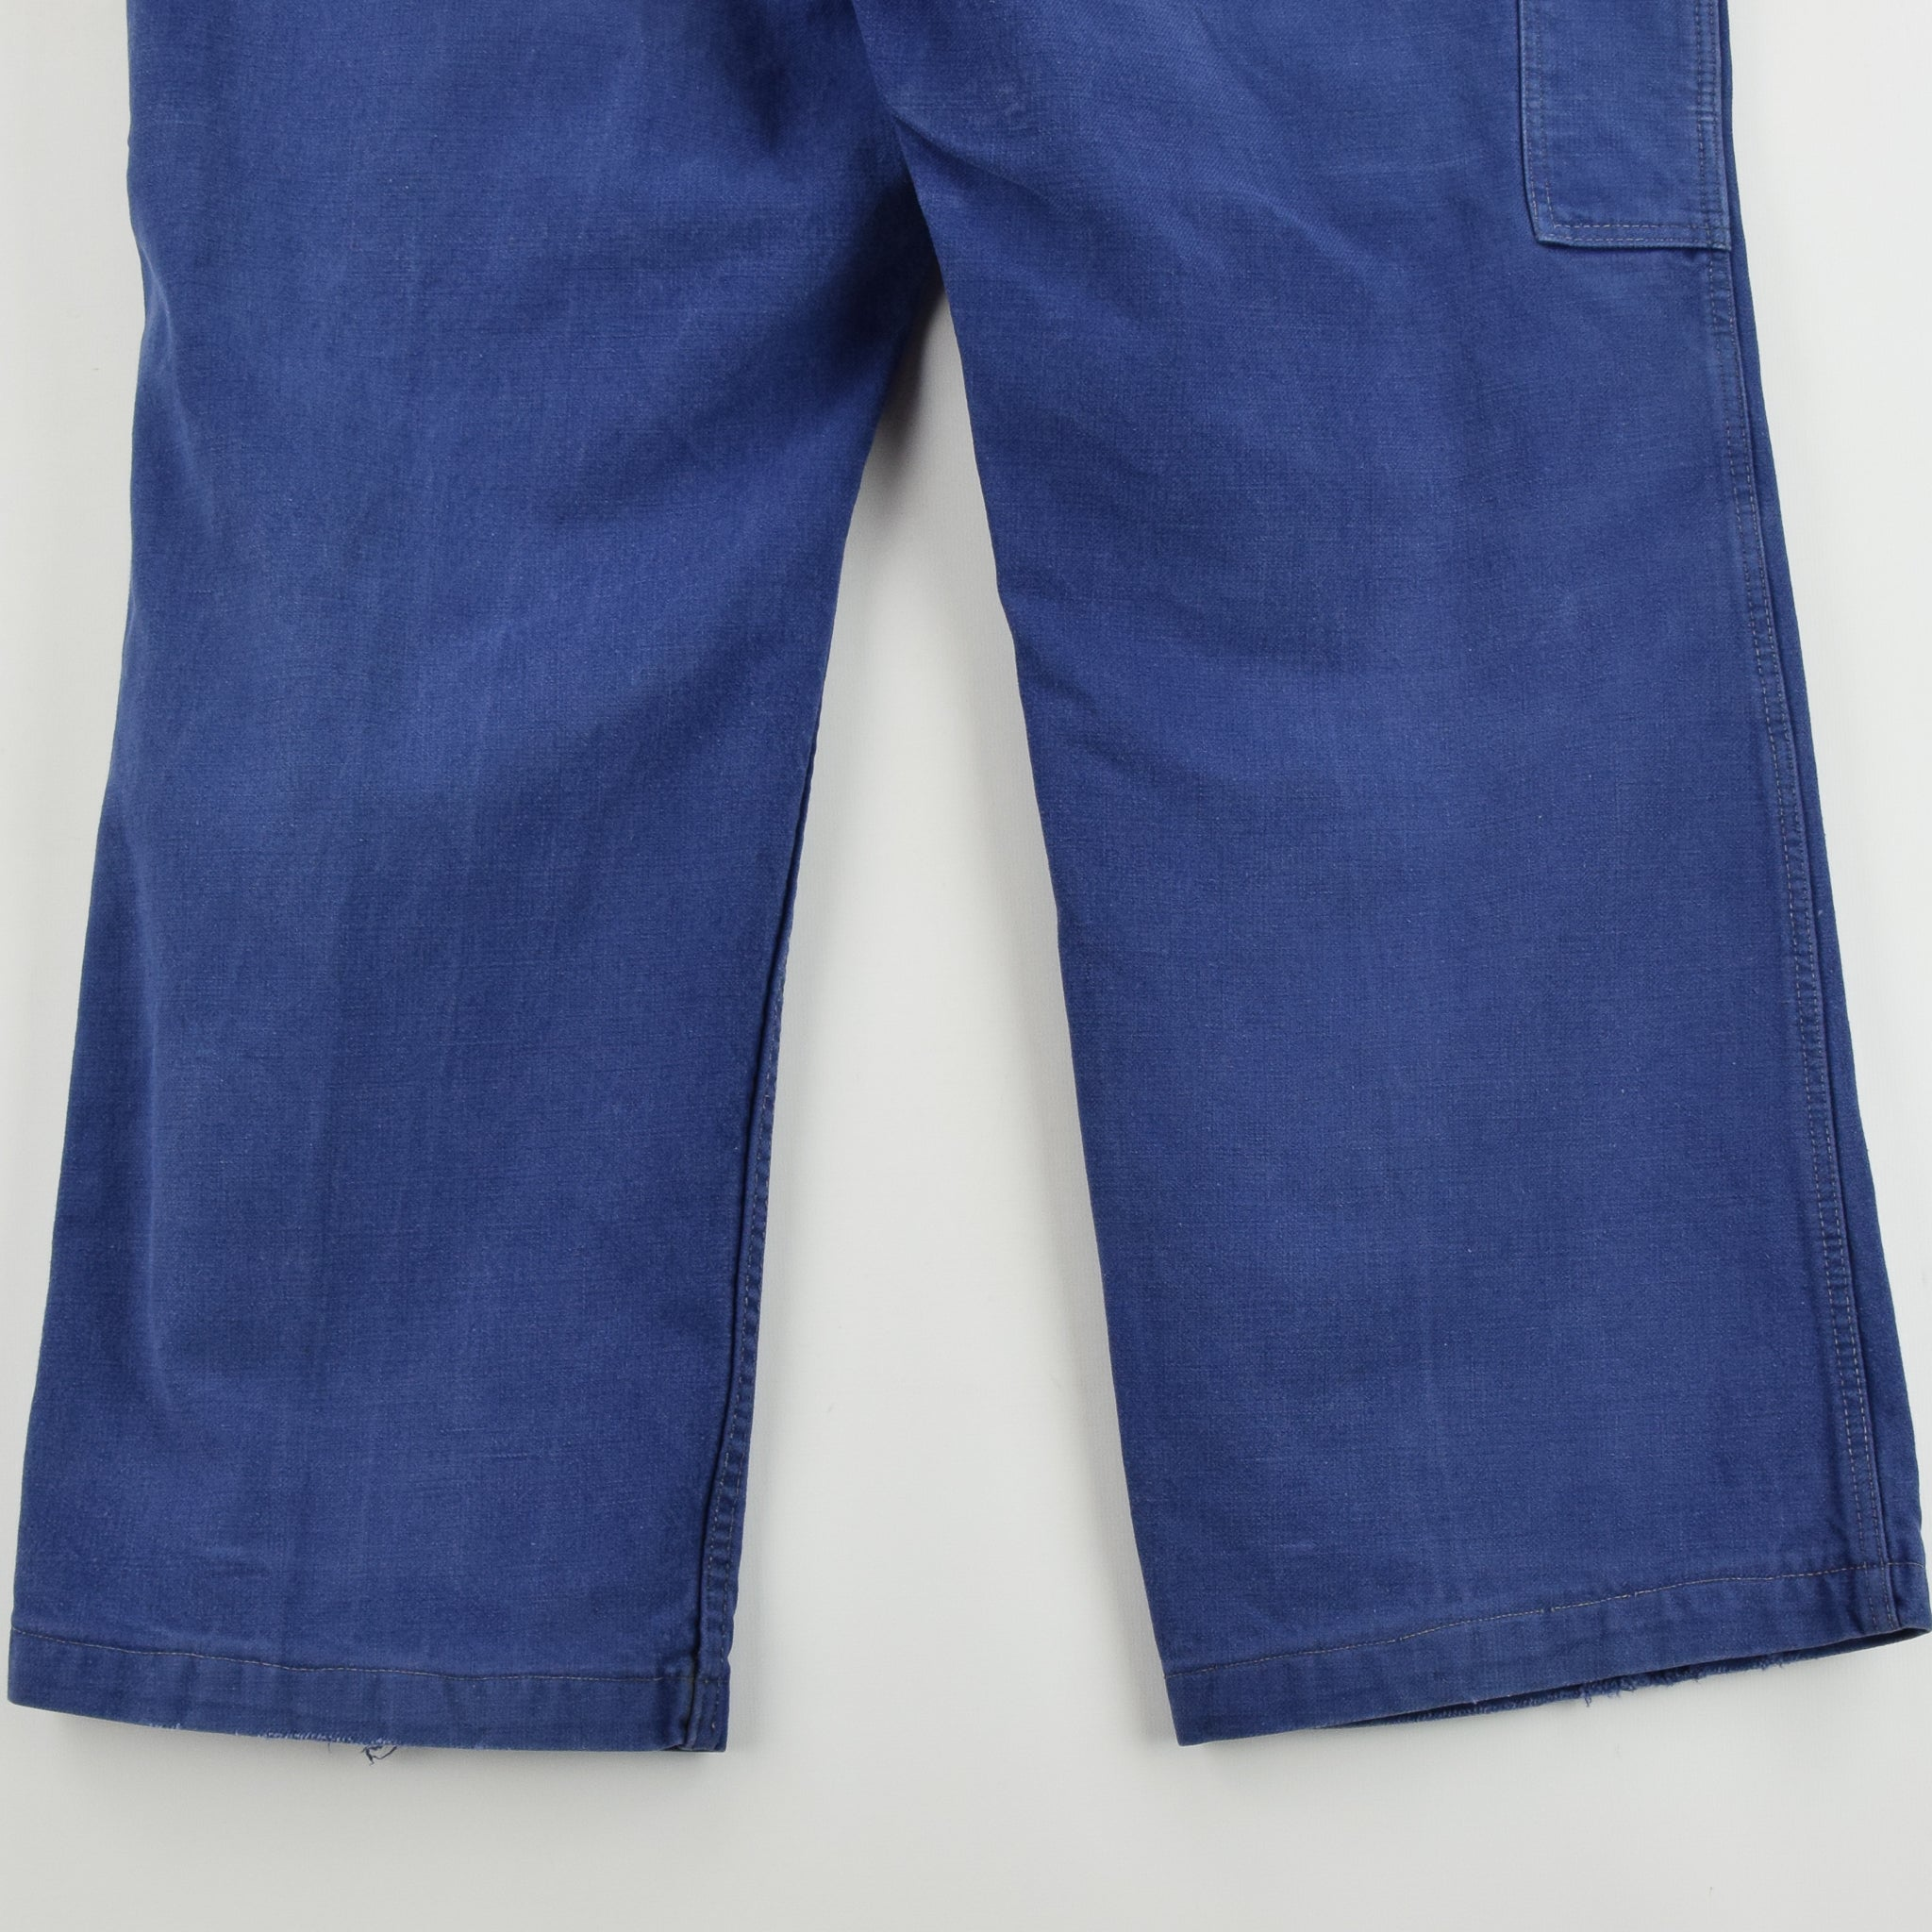 Vintage Workwear Blue Vetra French Work Utility Trousers France Made 36 W 28 L back hem